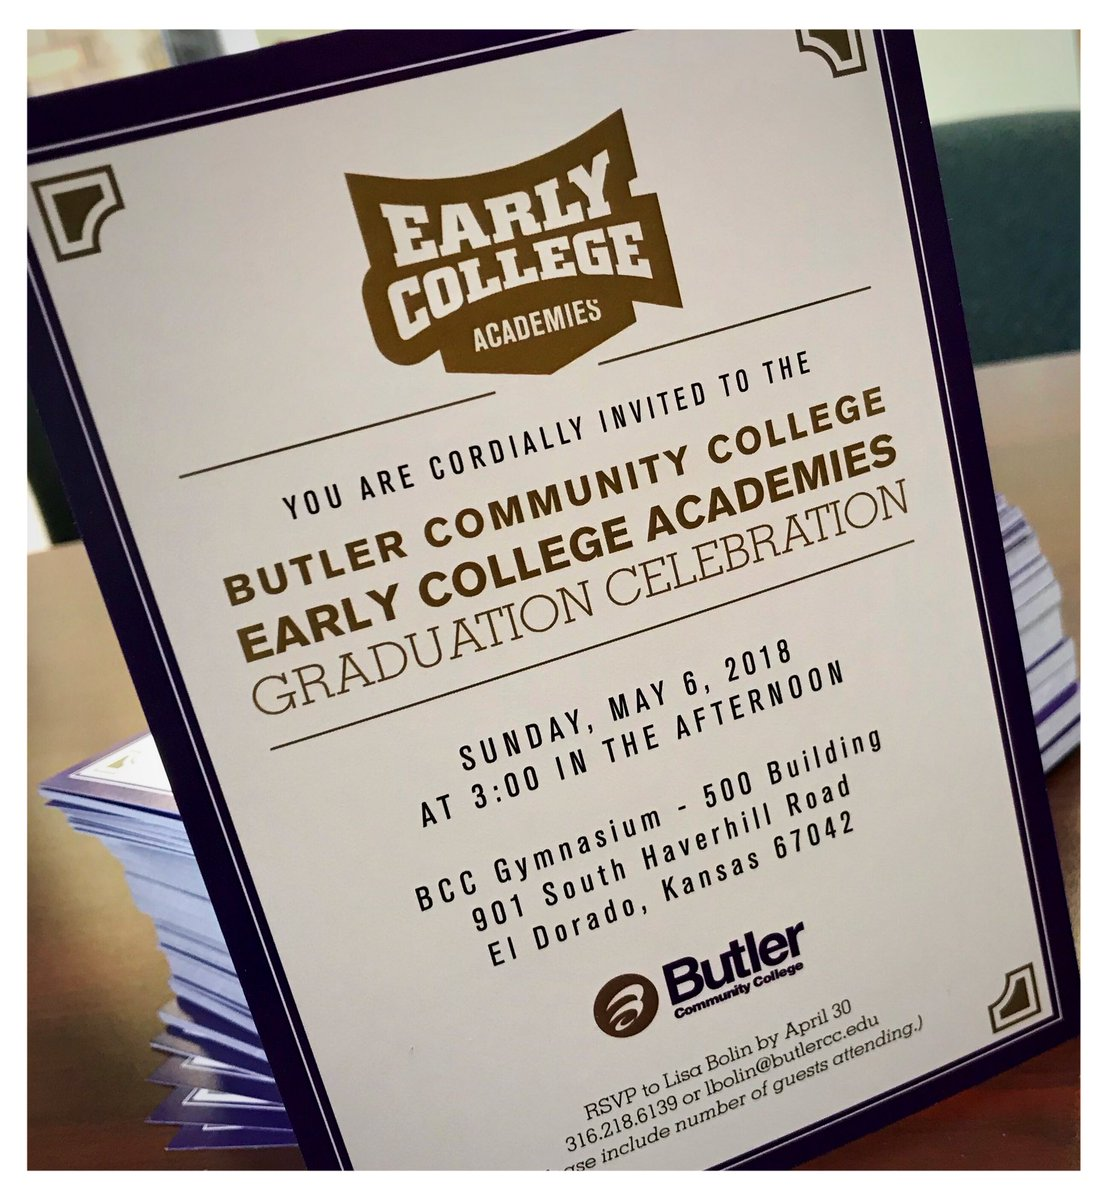 #The countdown has begun!!!🎉 Early College Academy Graduation 🎉 T-26 days 🎓👩‍🎓👨‍🎓Mark Your Calendars! #gettingahead #butlercommunitycollege